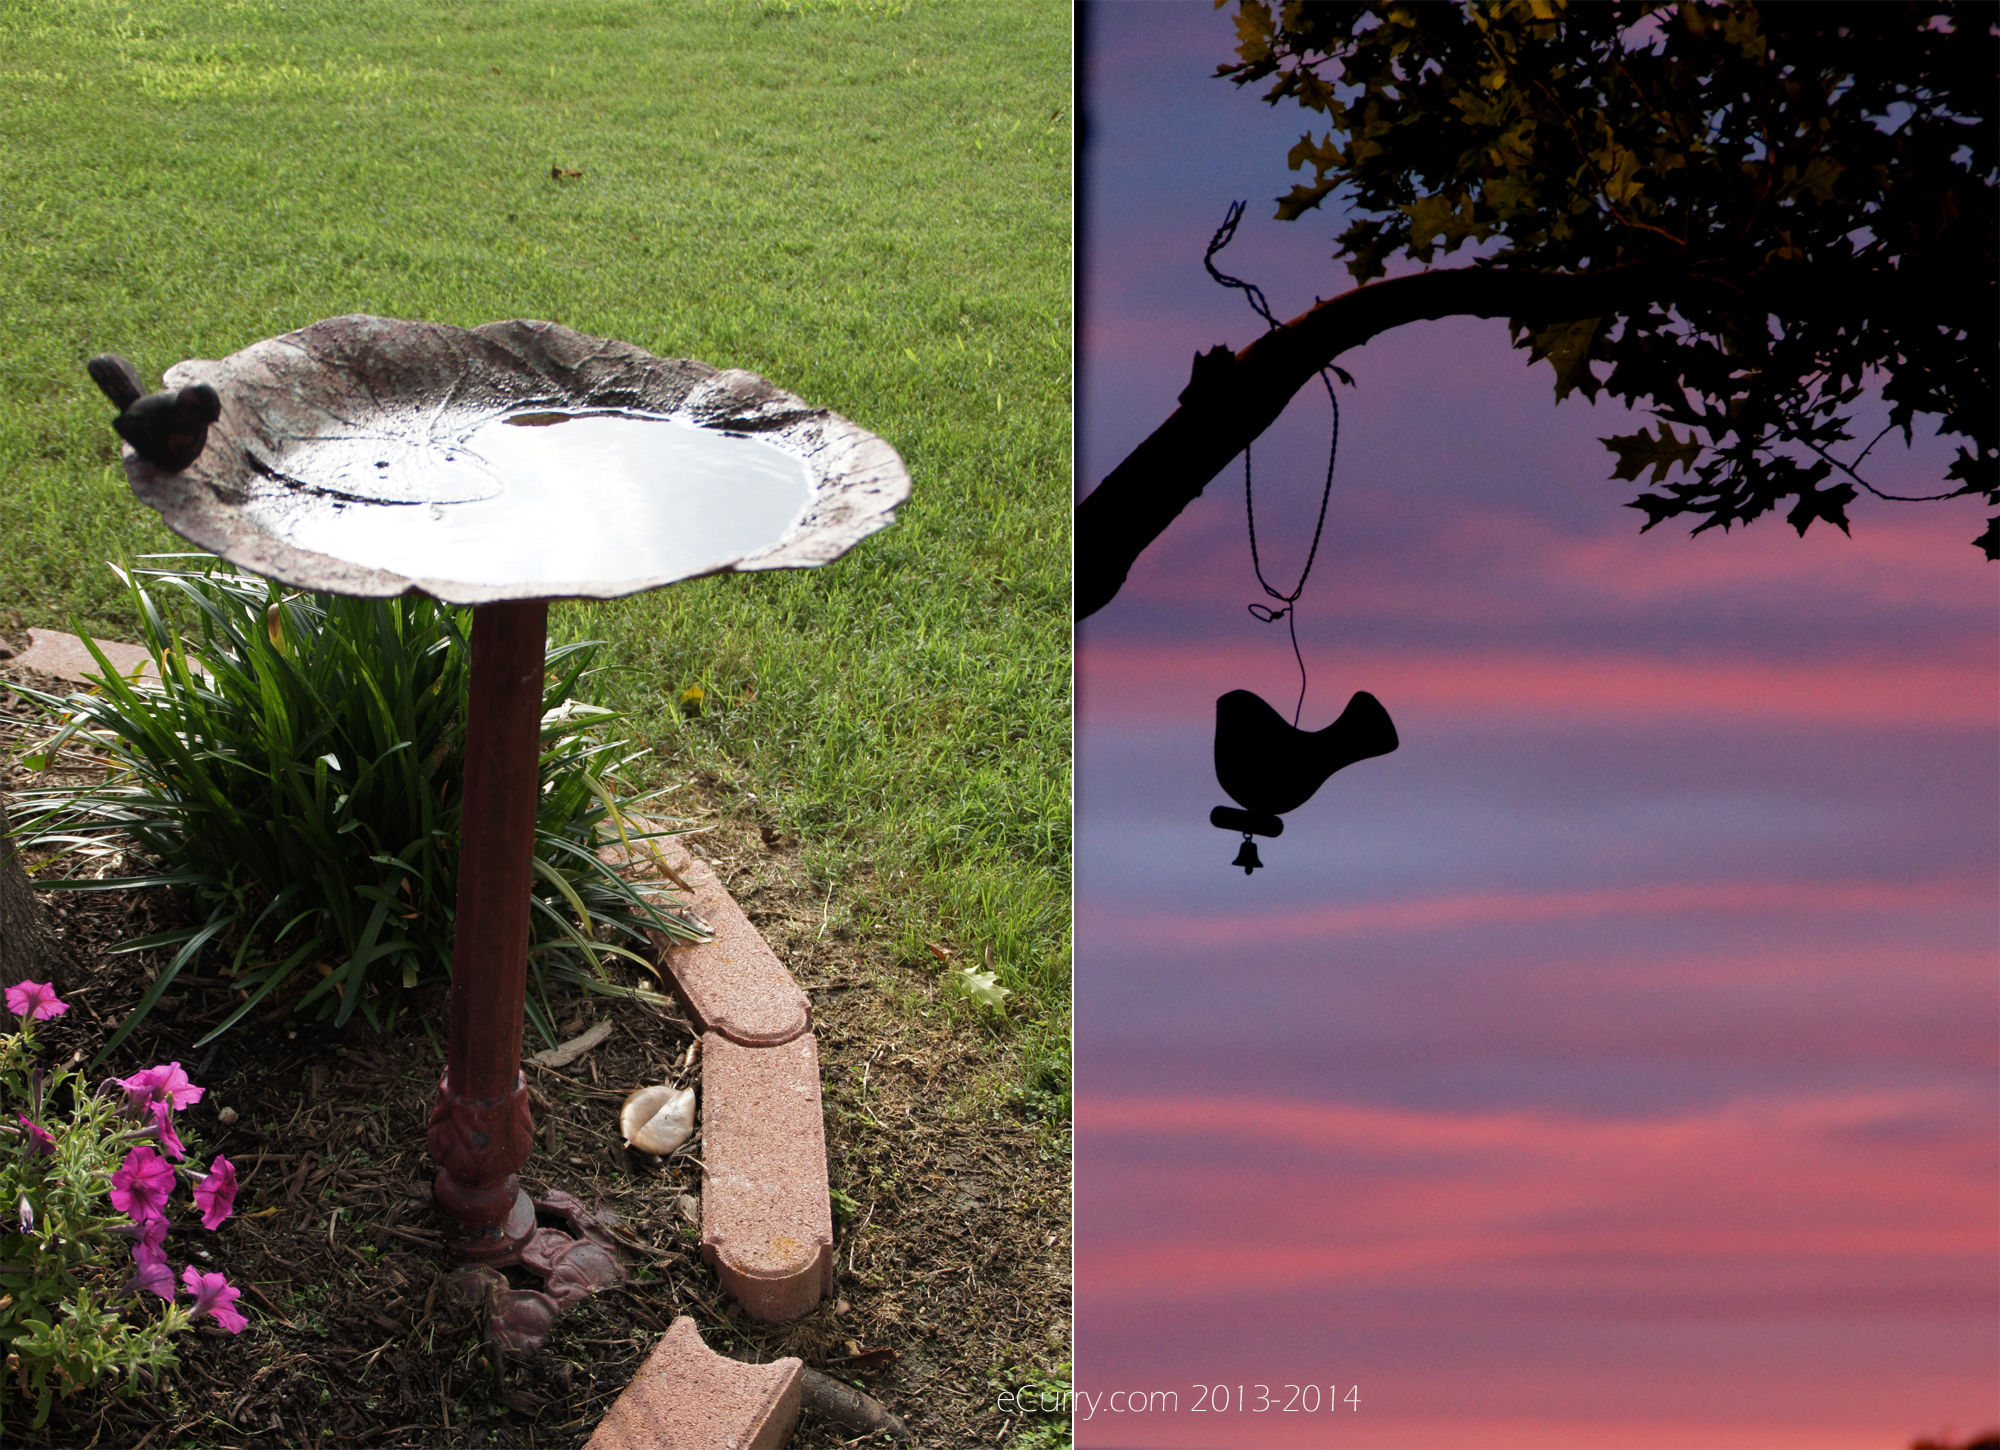 Bird_and Birdbath Diptych 1